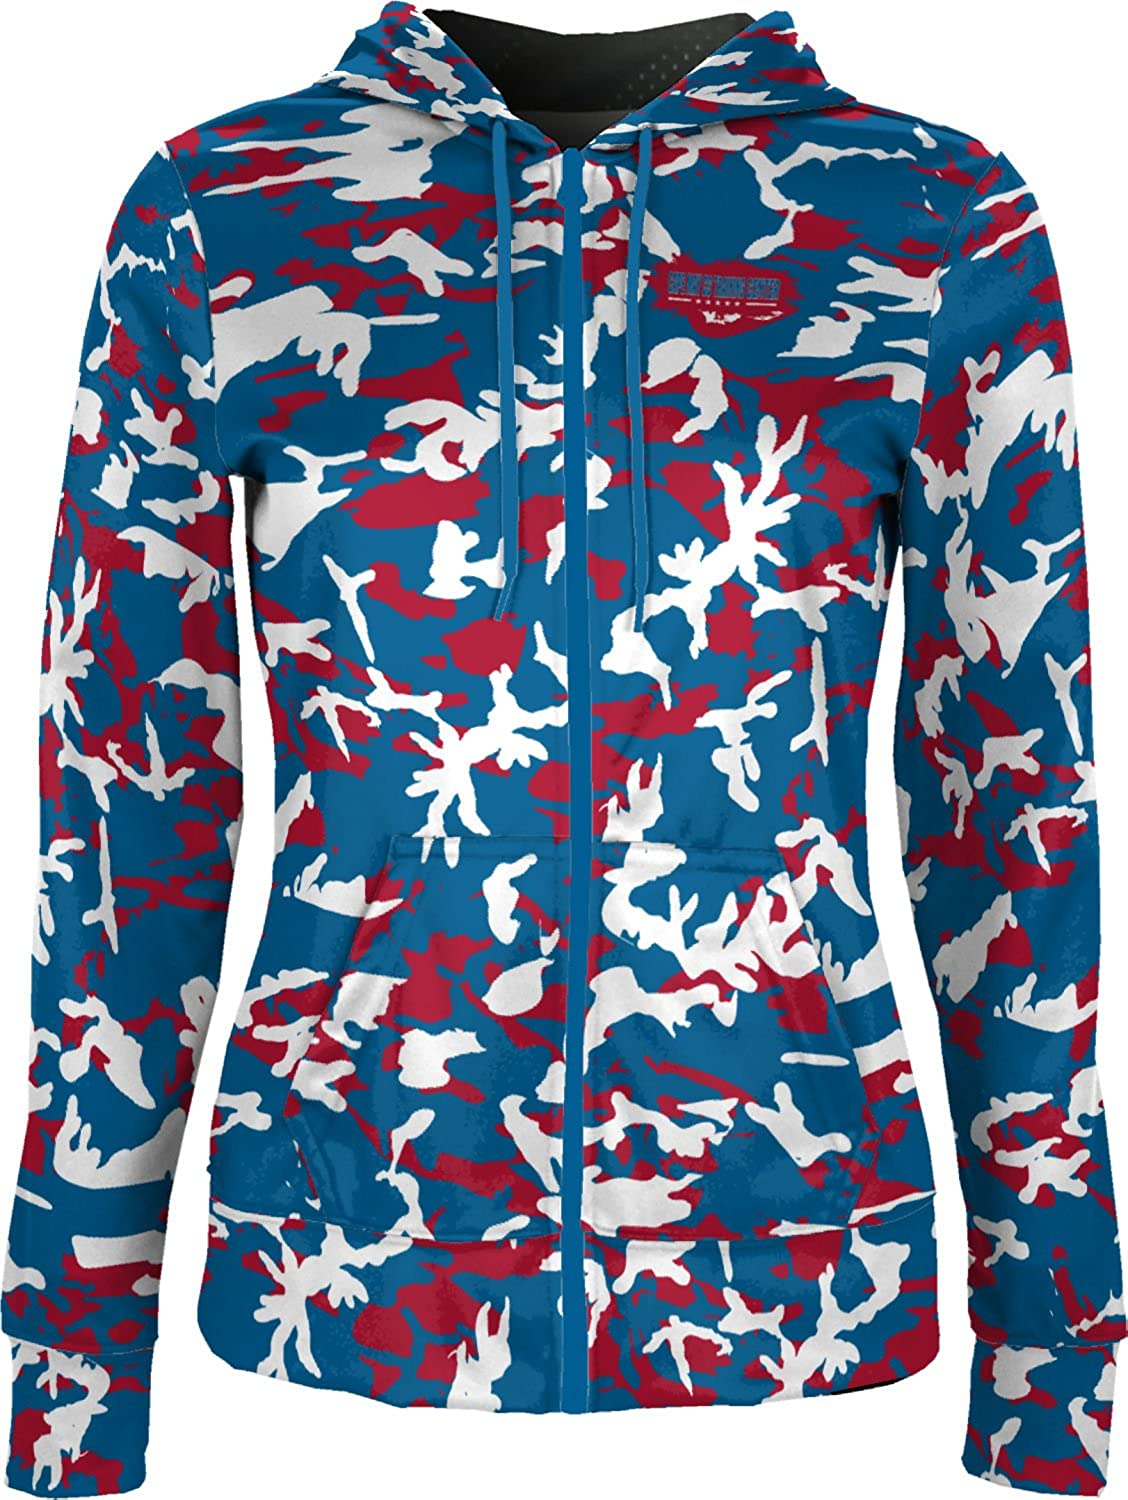 ProSphere Women's Cape May CG Training Center Military Camo Fullzip Hoodie